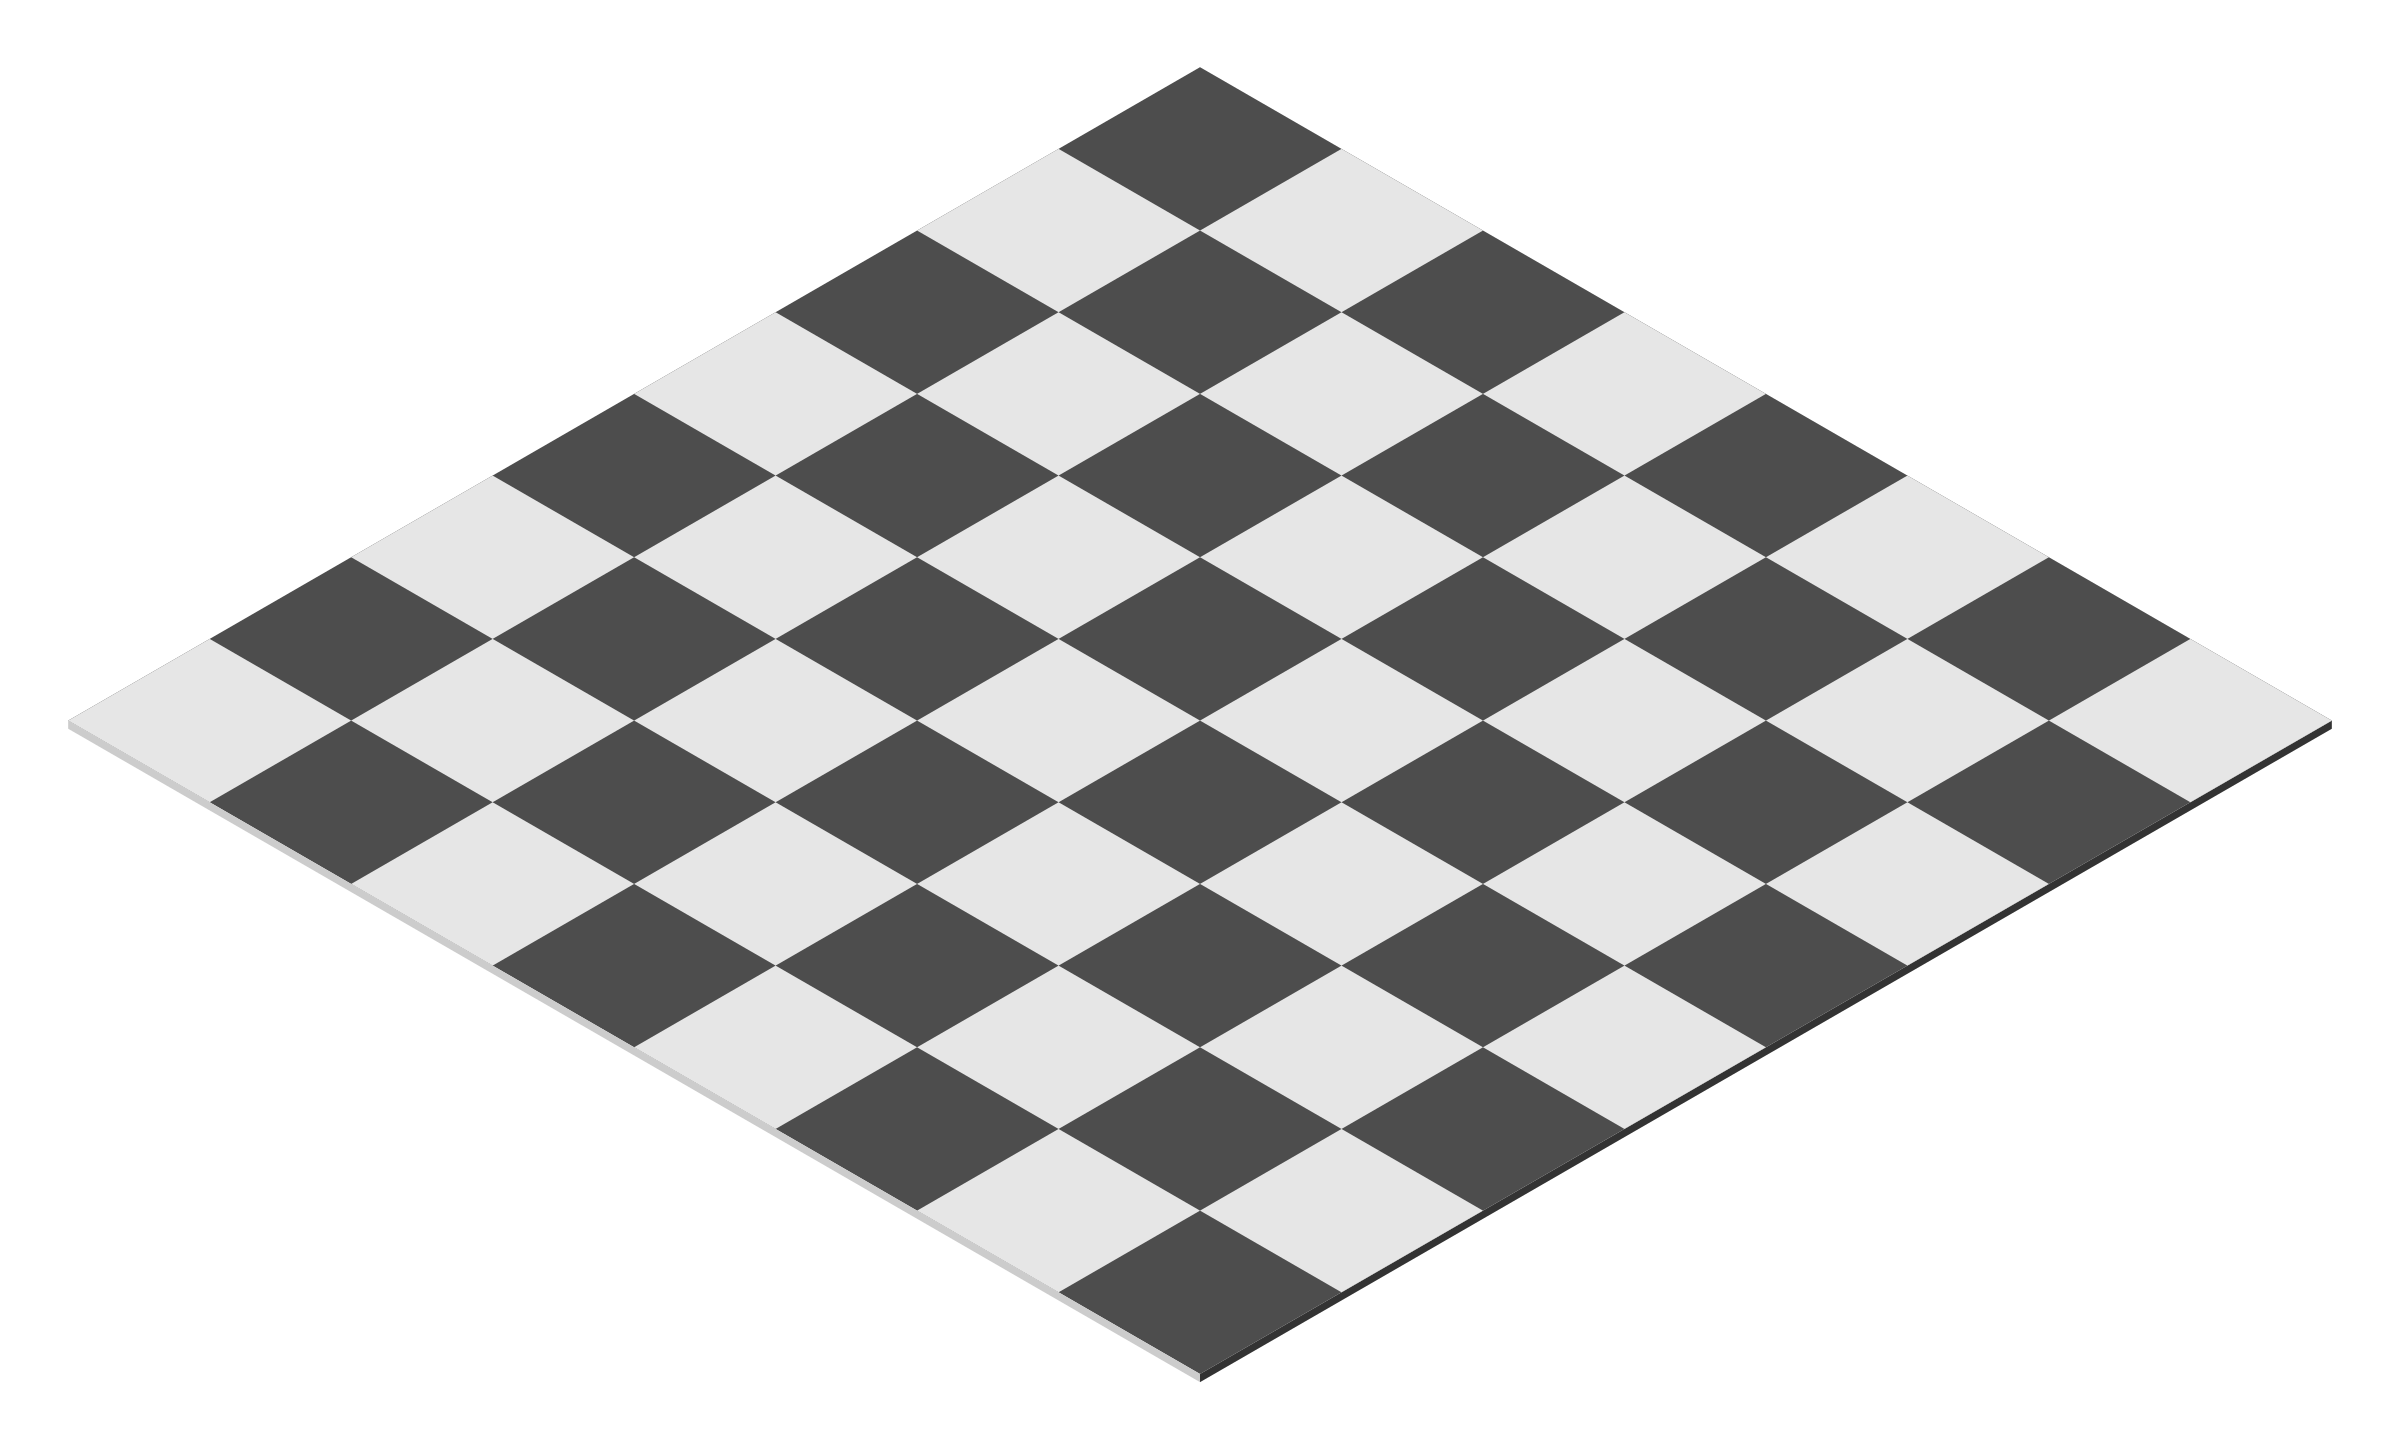 2400x1450 Black And White Chess Board Vector File Image